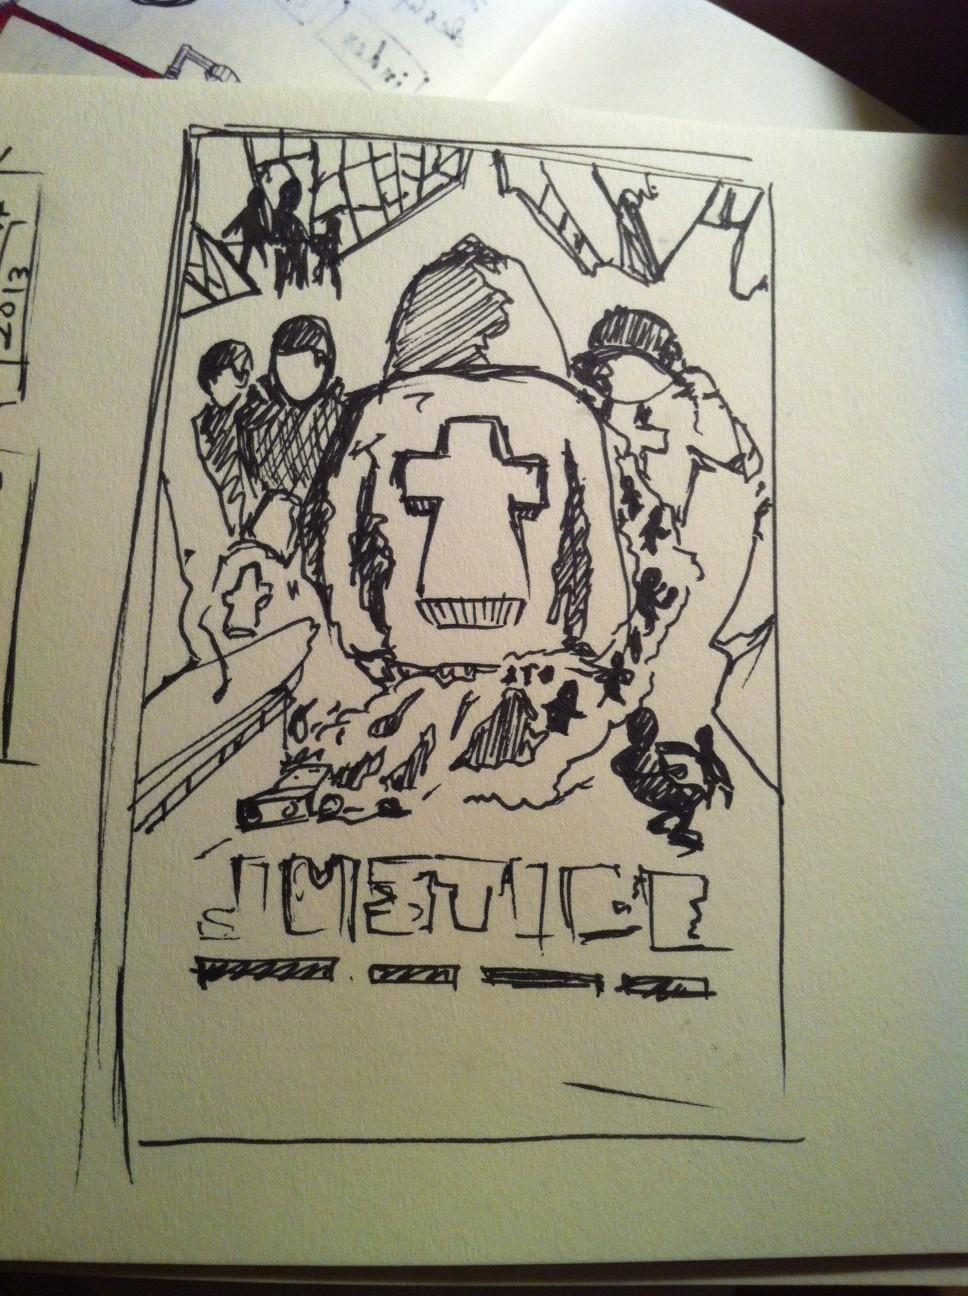 JUSTICE - Stress Tour - image 10 - student project